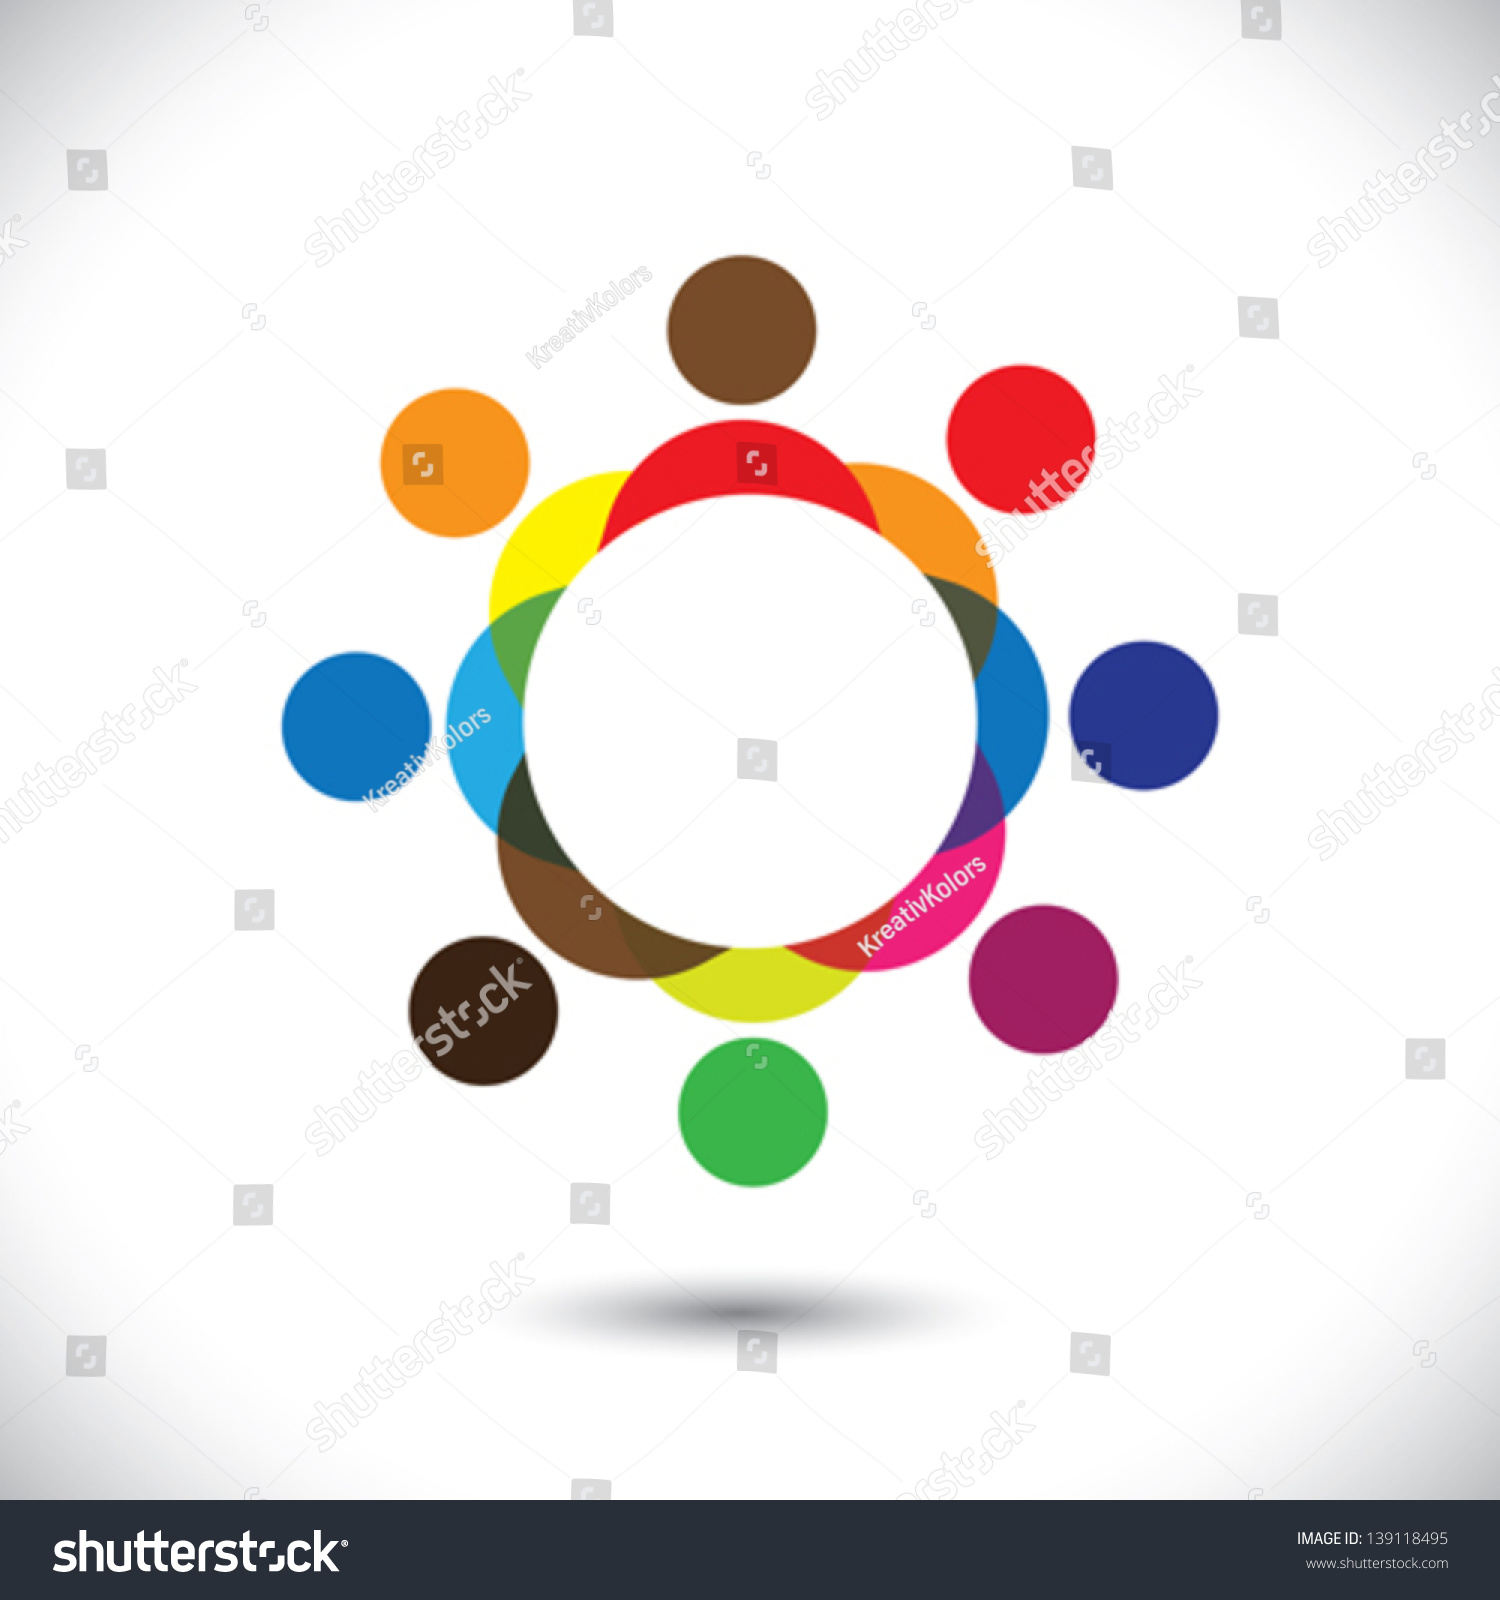 Royalty Free Abstract Colorful People Symbols In 139118495 Stock